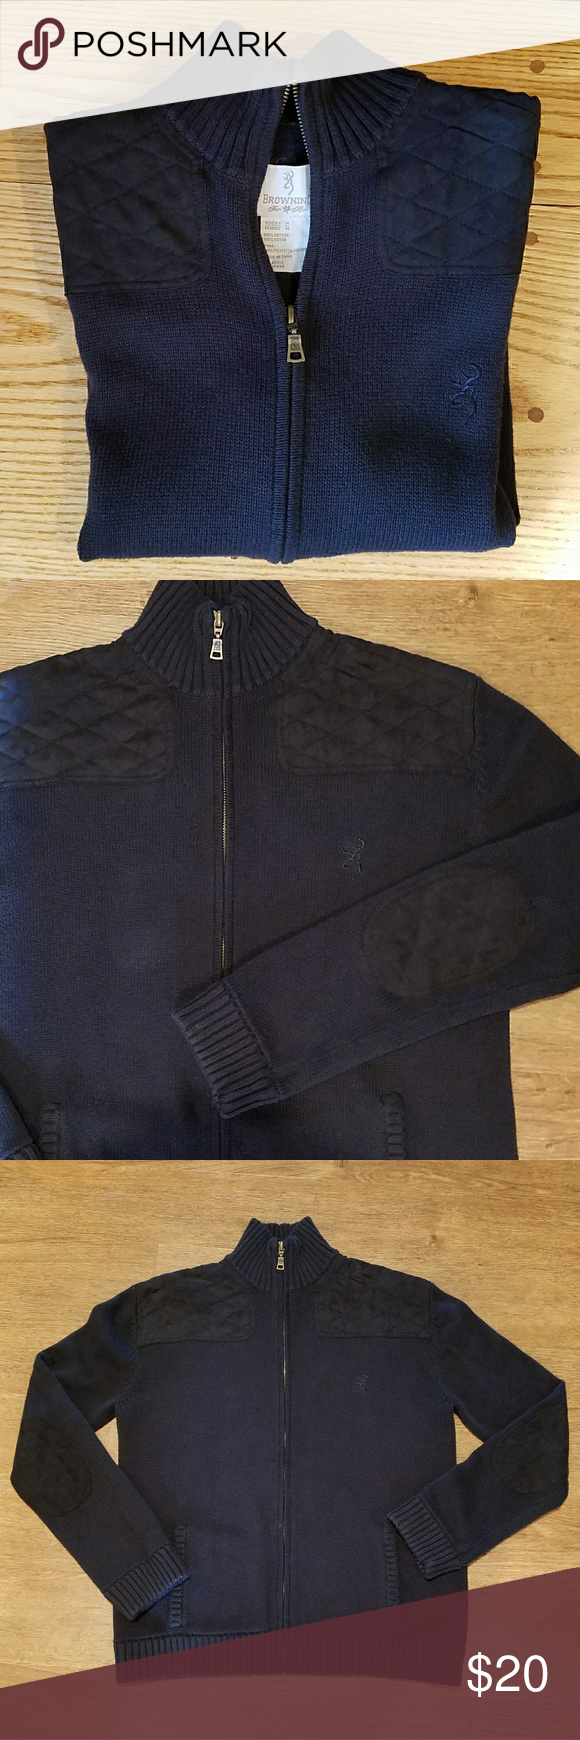 Browning Black Zip up Sweater | Cotton sweater, Browning and Nice